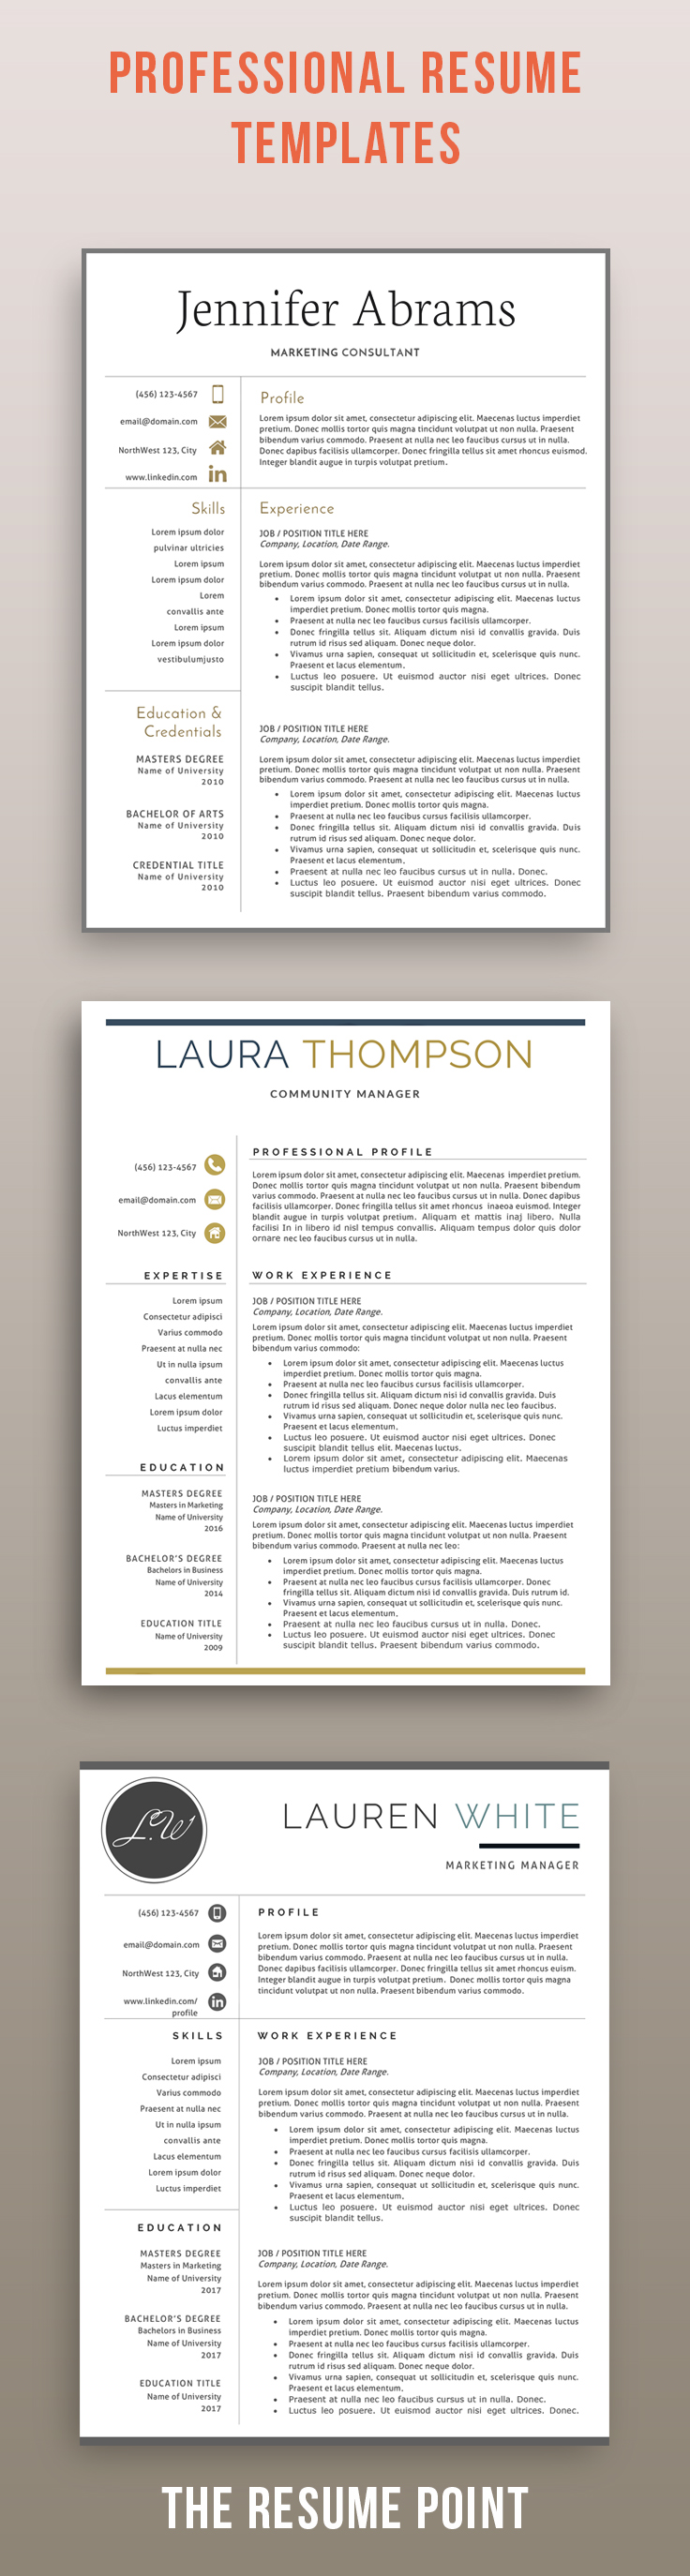 Resume Template Word Mac Inspiration Resume Templates For Modern Professionalseasily Editable In .